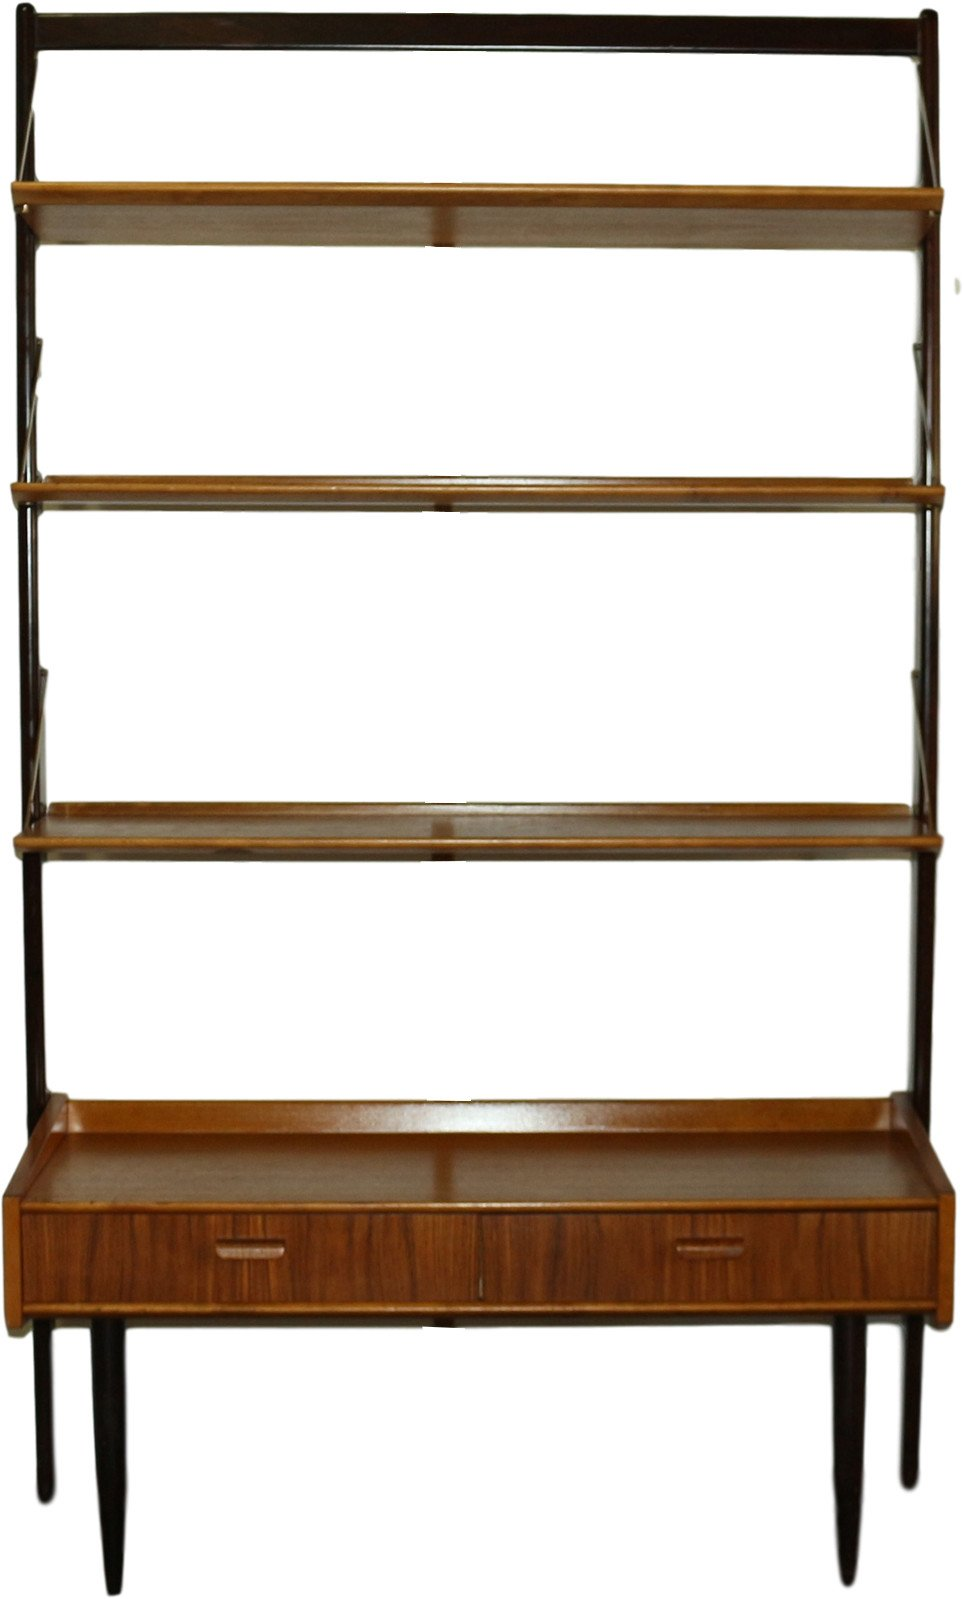 Bookcase, Norway, 1960s